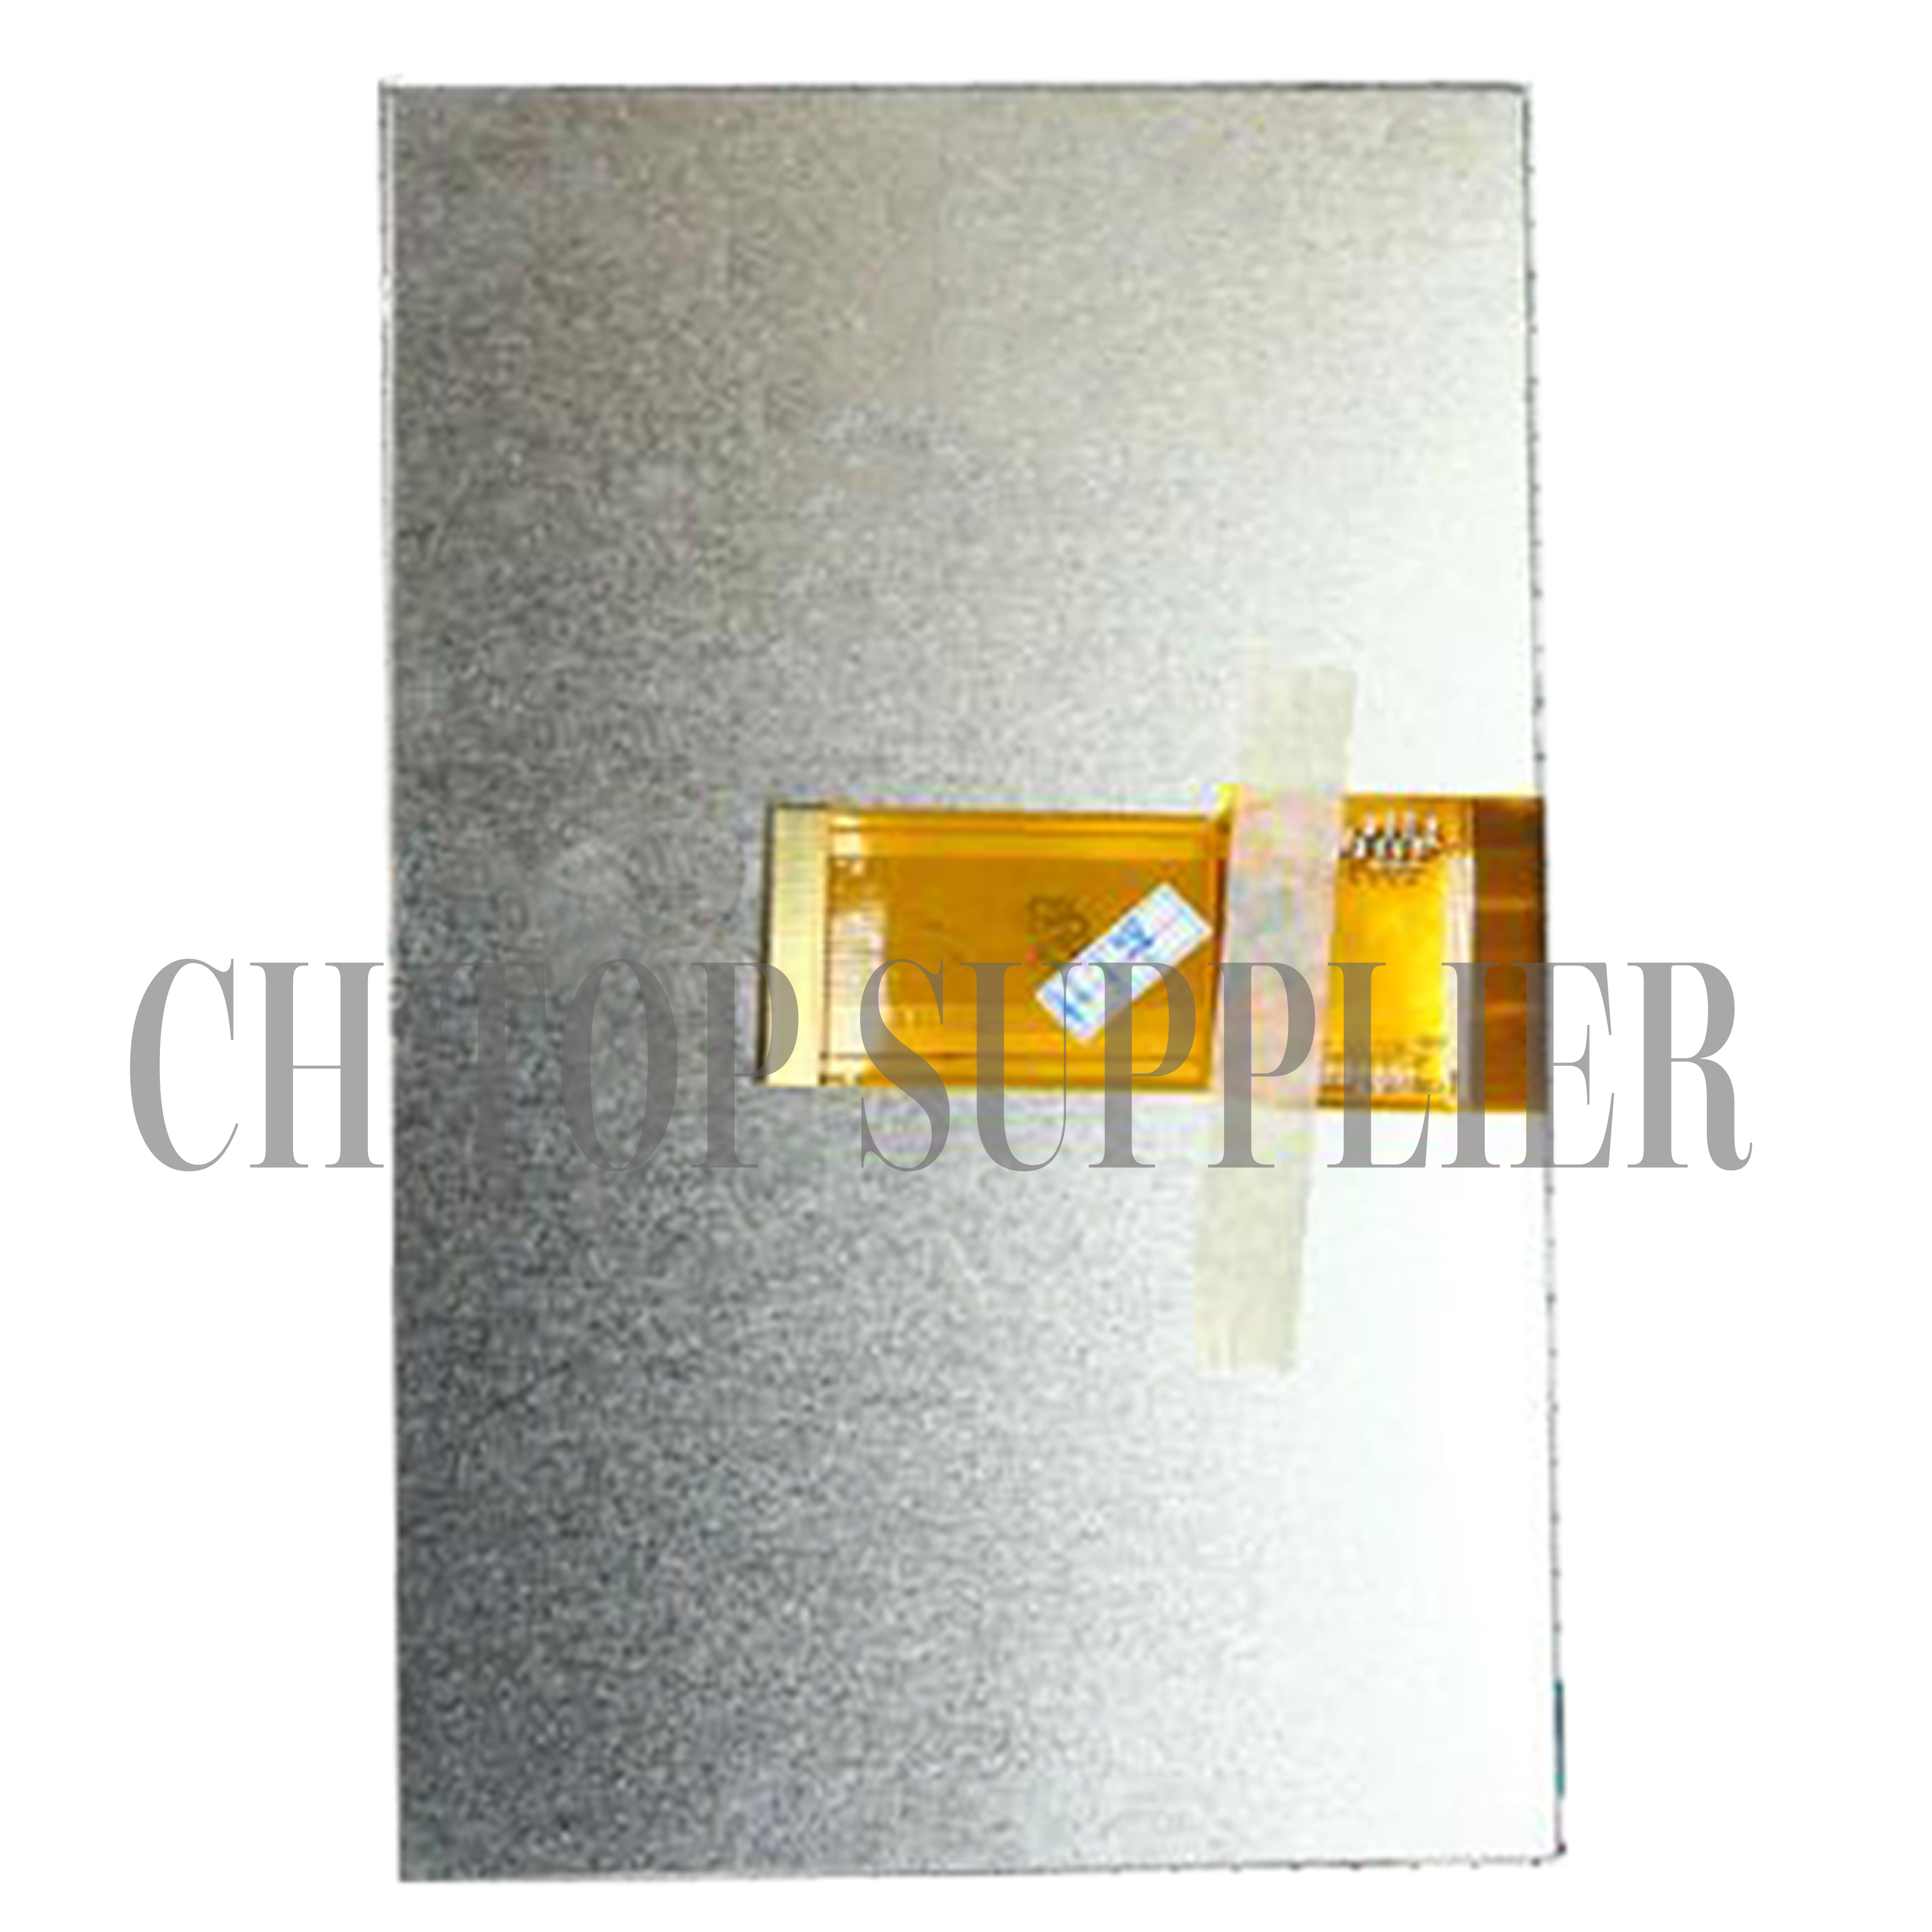 164* 97mm 50 pin New LCD display Matrix For 7 bq 7061g Tablet inner TFT LCD Screen Panel Lens Module Glass Replacement 008 c 22 replacement upper lower tft lcd screen module for nds lite silver 2 lcd set